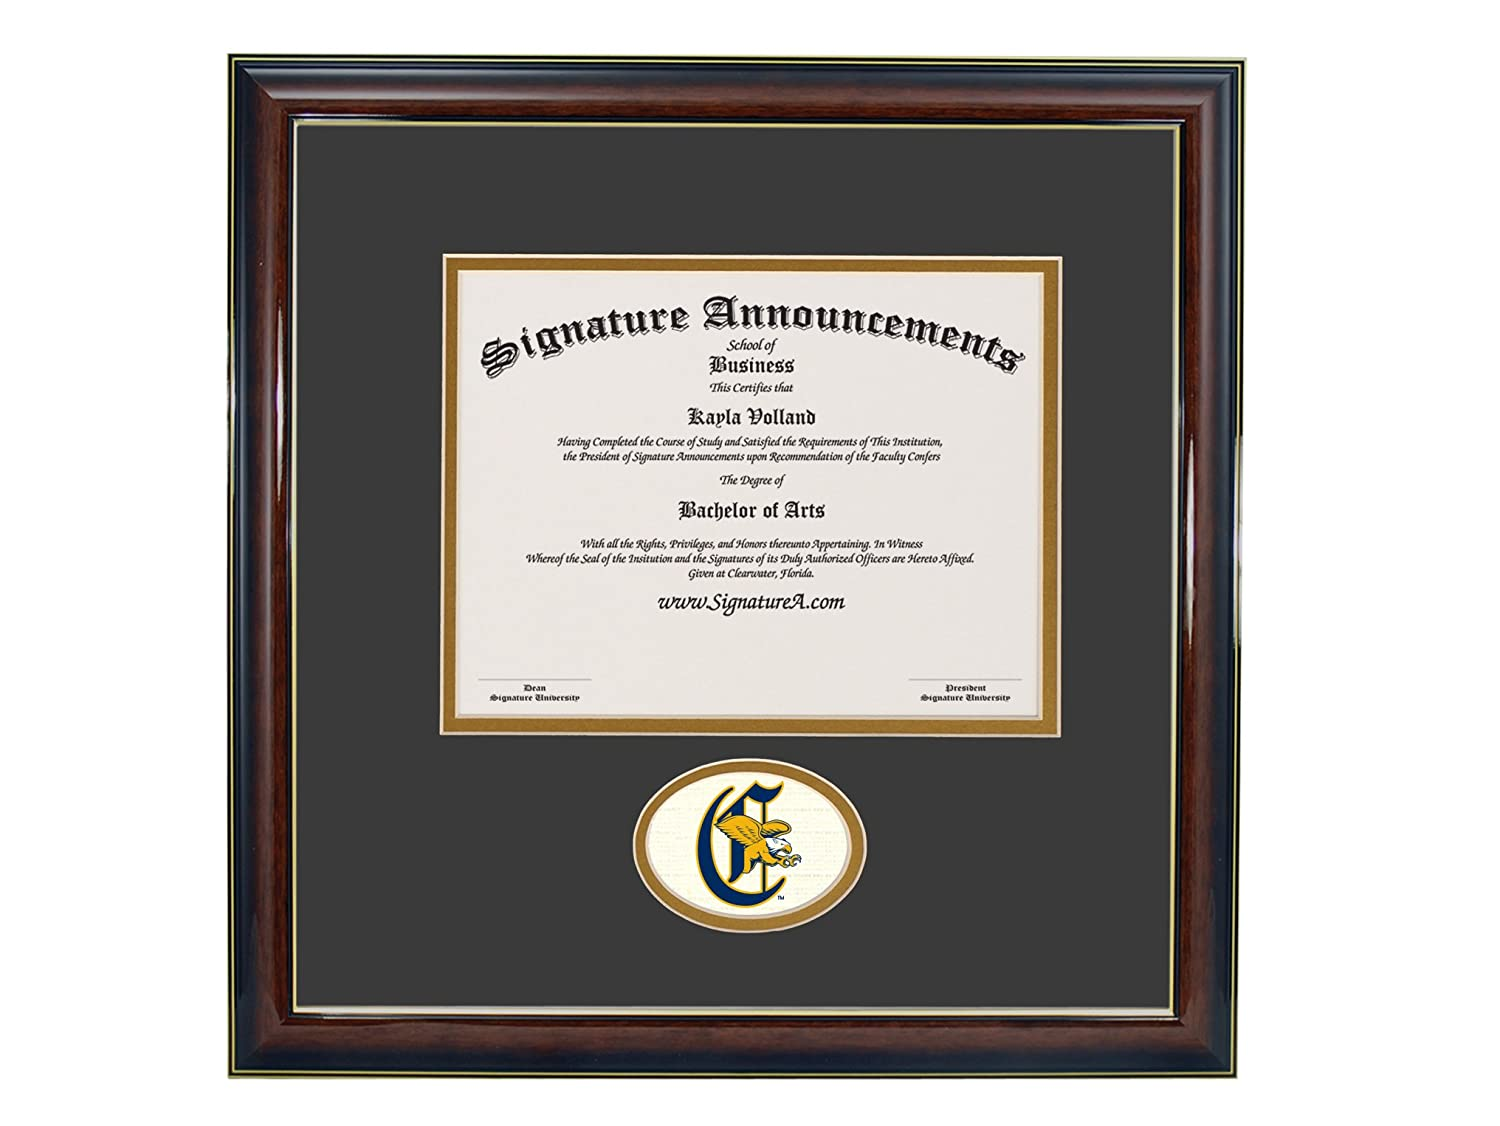 Signature Announcements Canisius-College Undergraduate Professional//Doctor Sculpted Foil Seal Graduation Diploma Frame 16 x 16 Gold Accent Gloss Mahogany